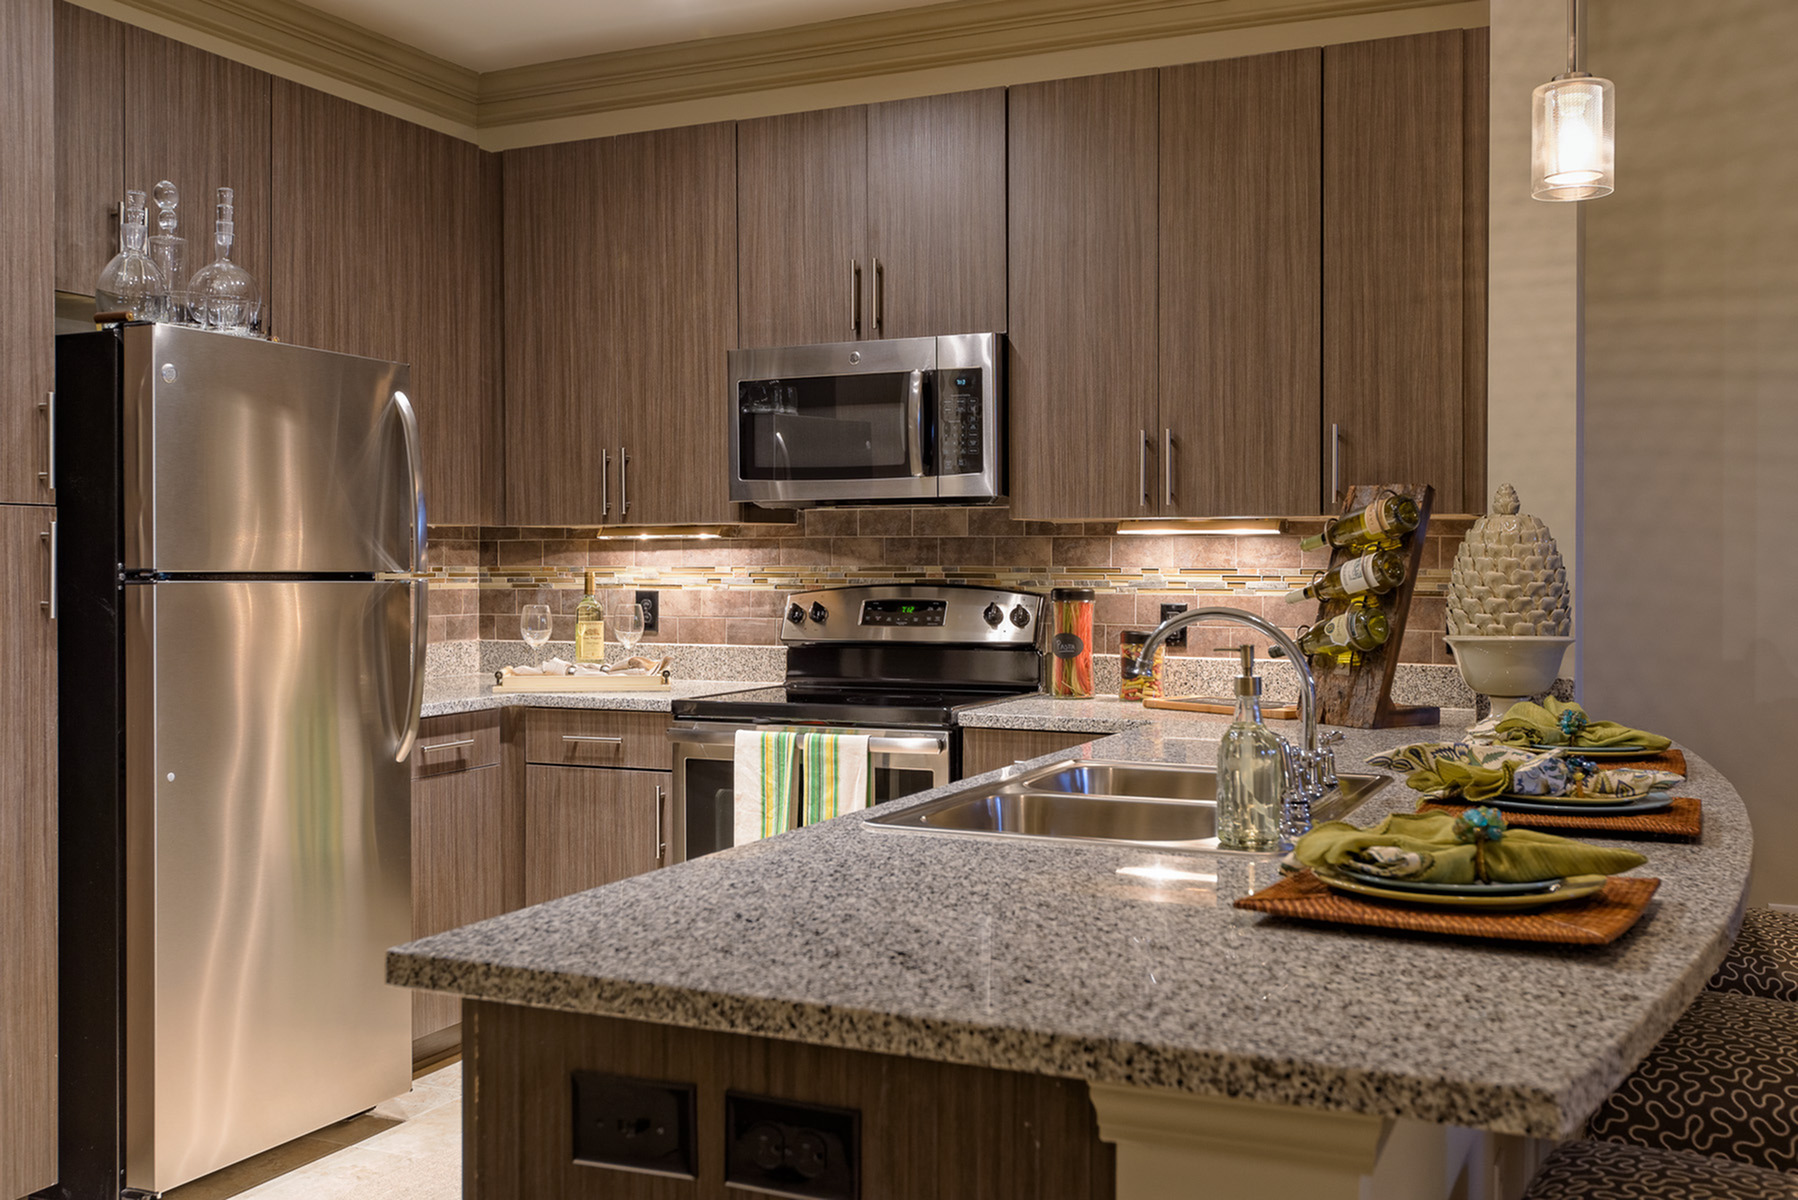 View of Kitchen, Showing Granite Countertop and Stainless Steel Appliances at Heights at Meridian Apartments